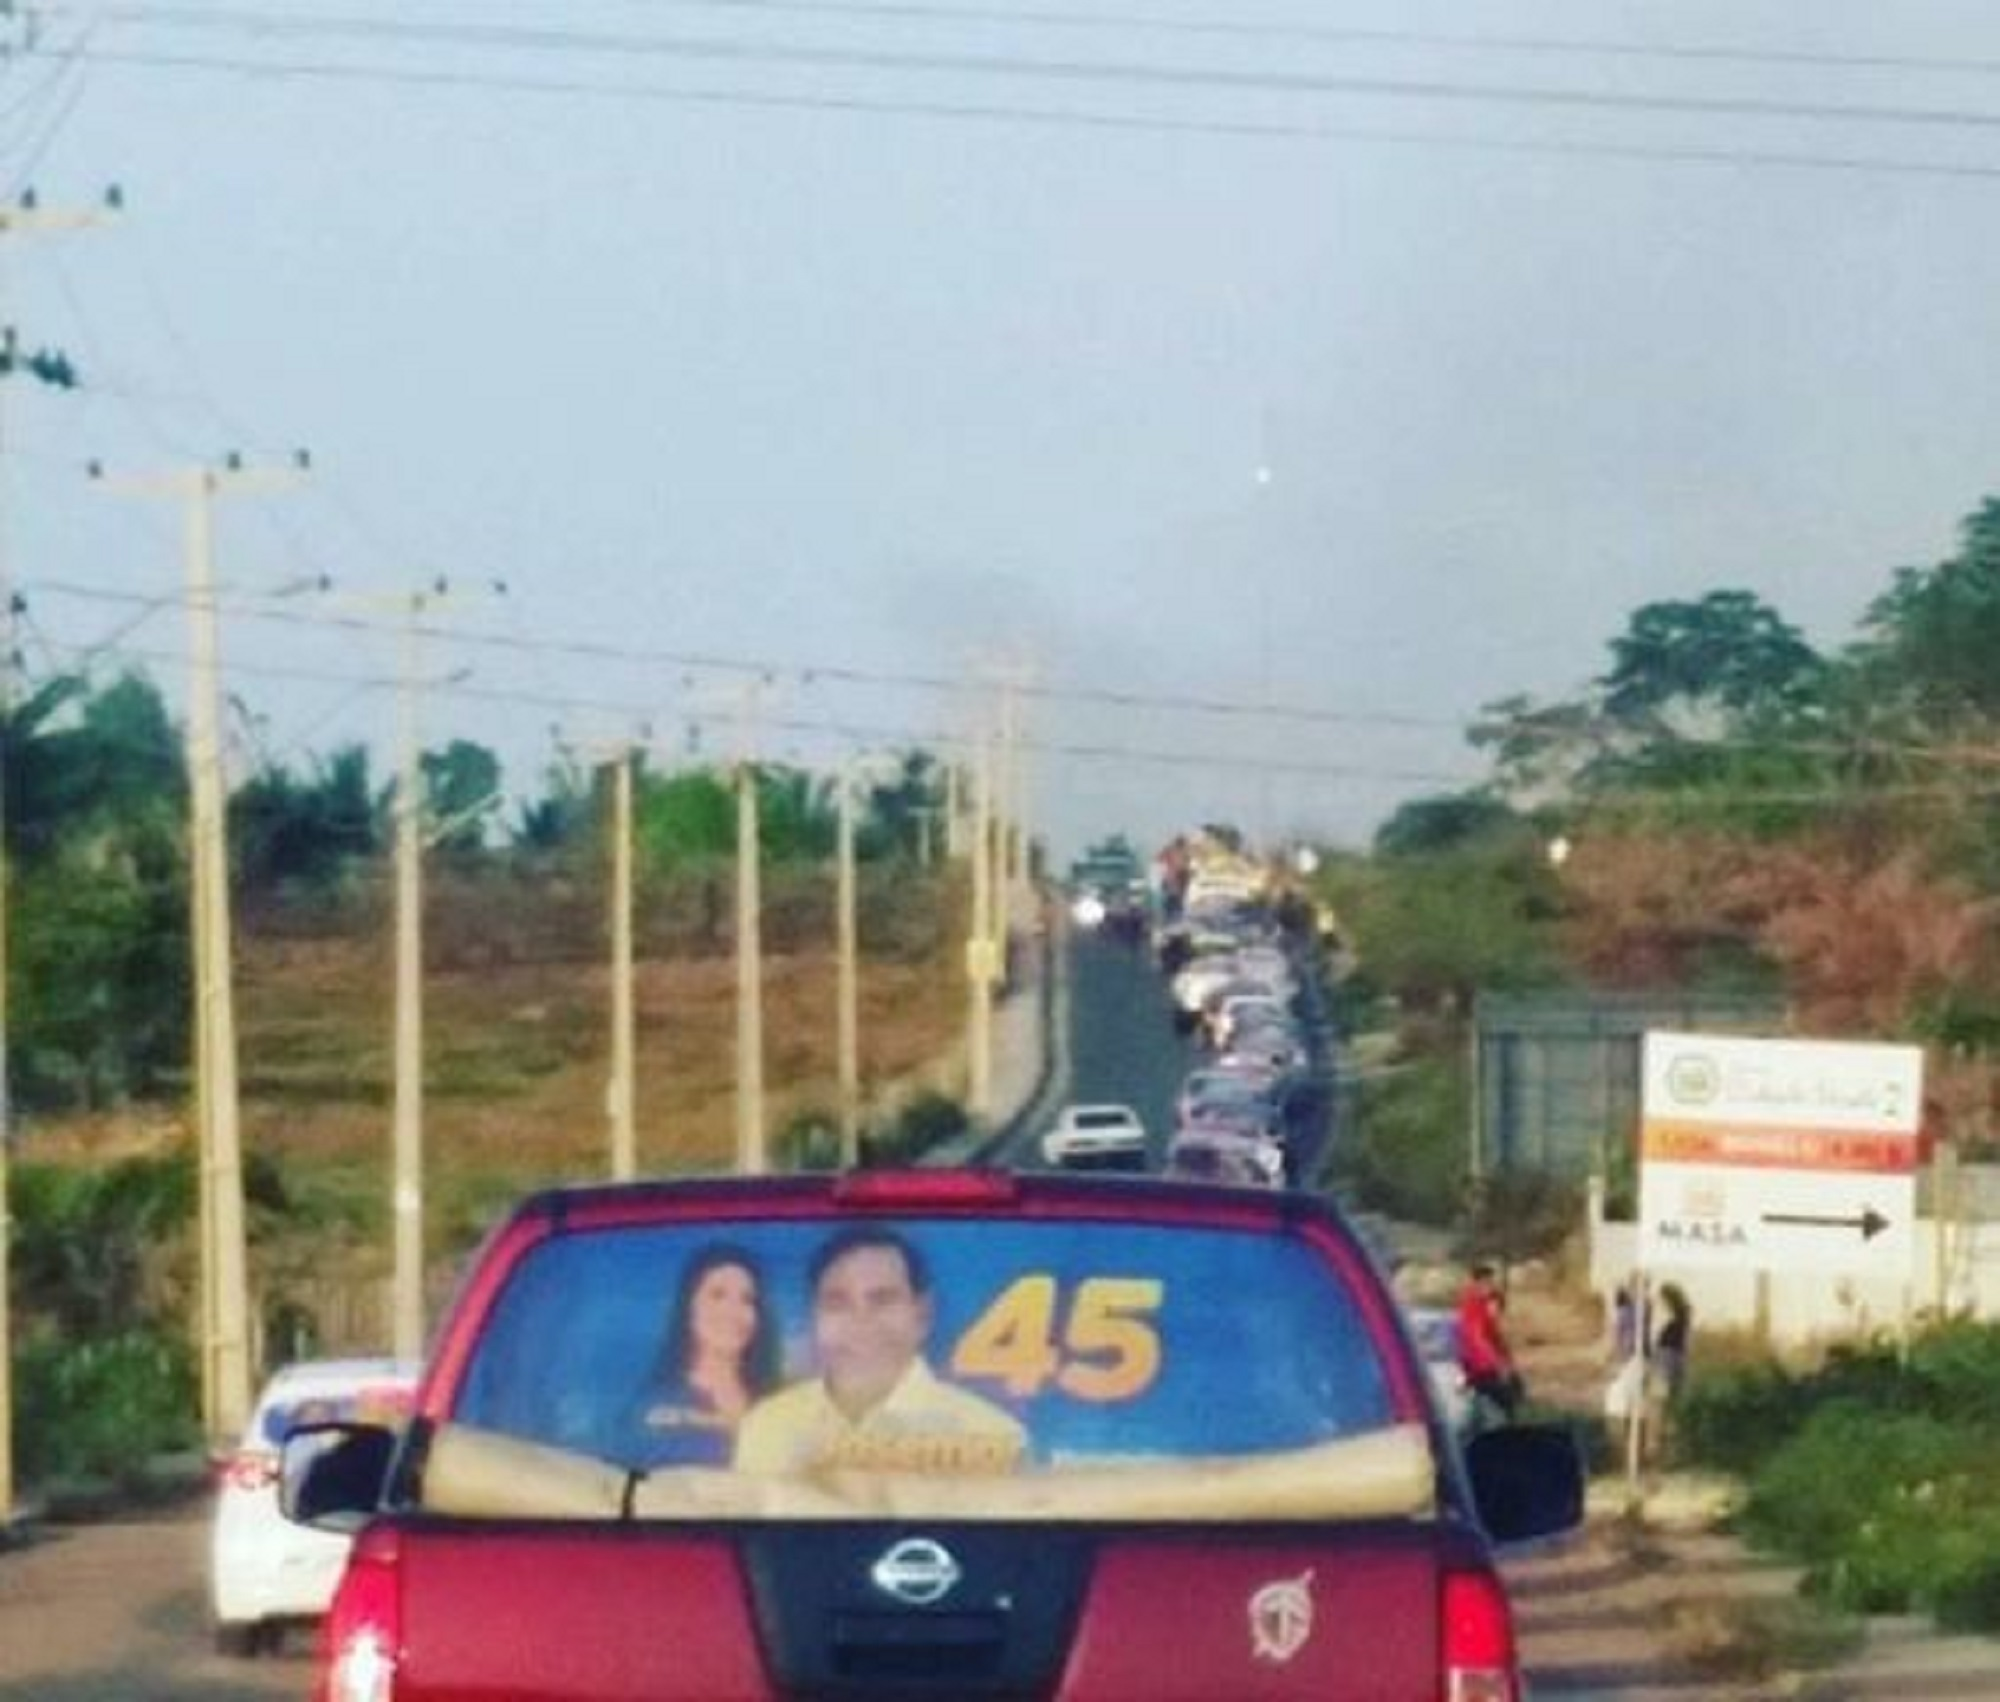 Carreata do 45